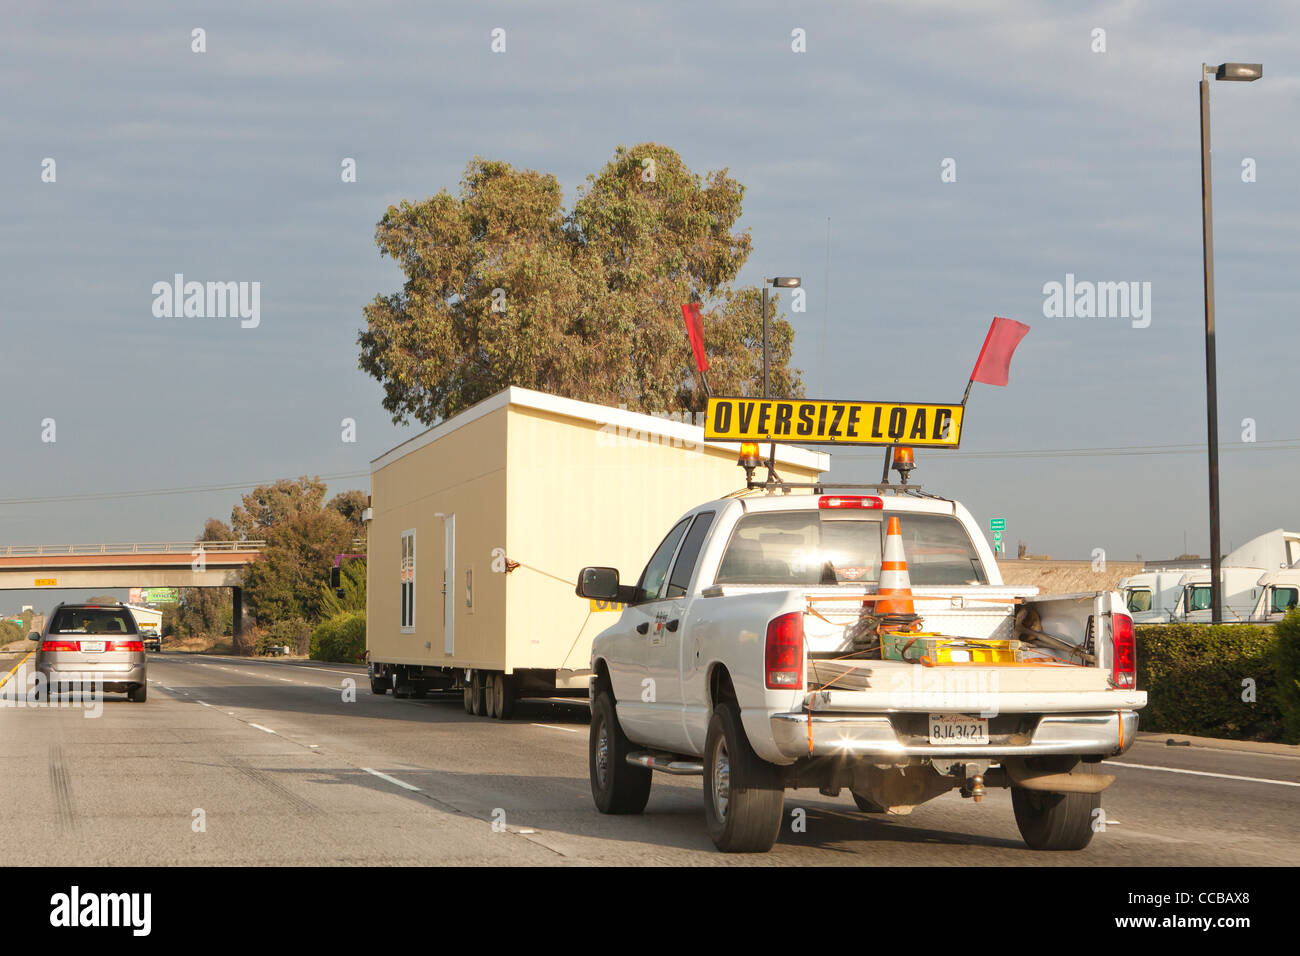 An oversize load on highway - Stock Image